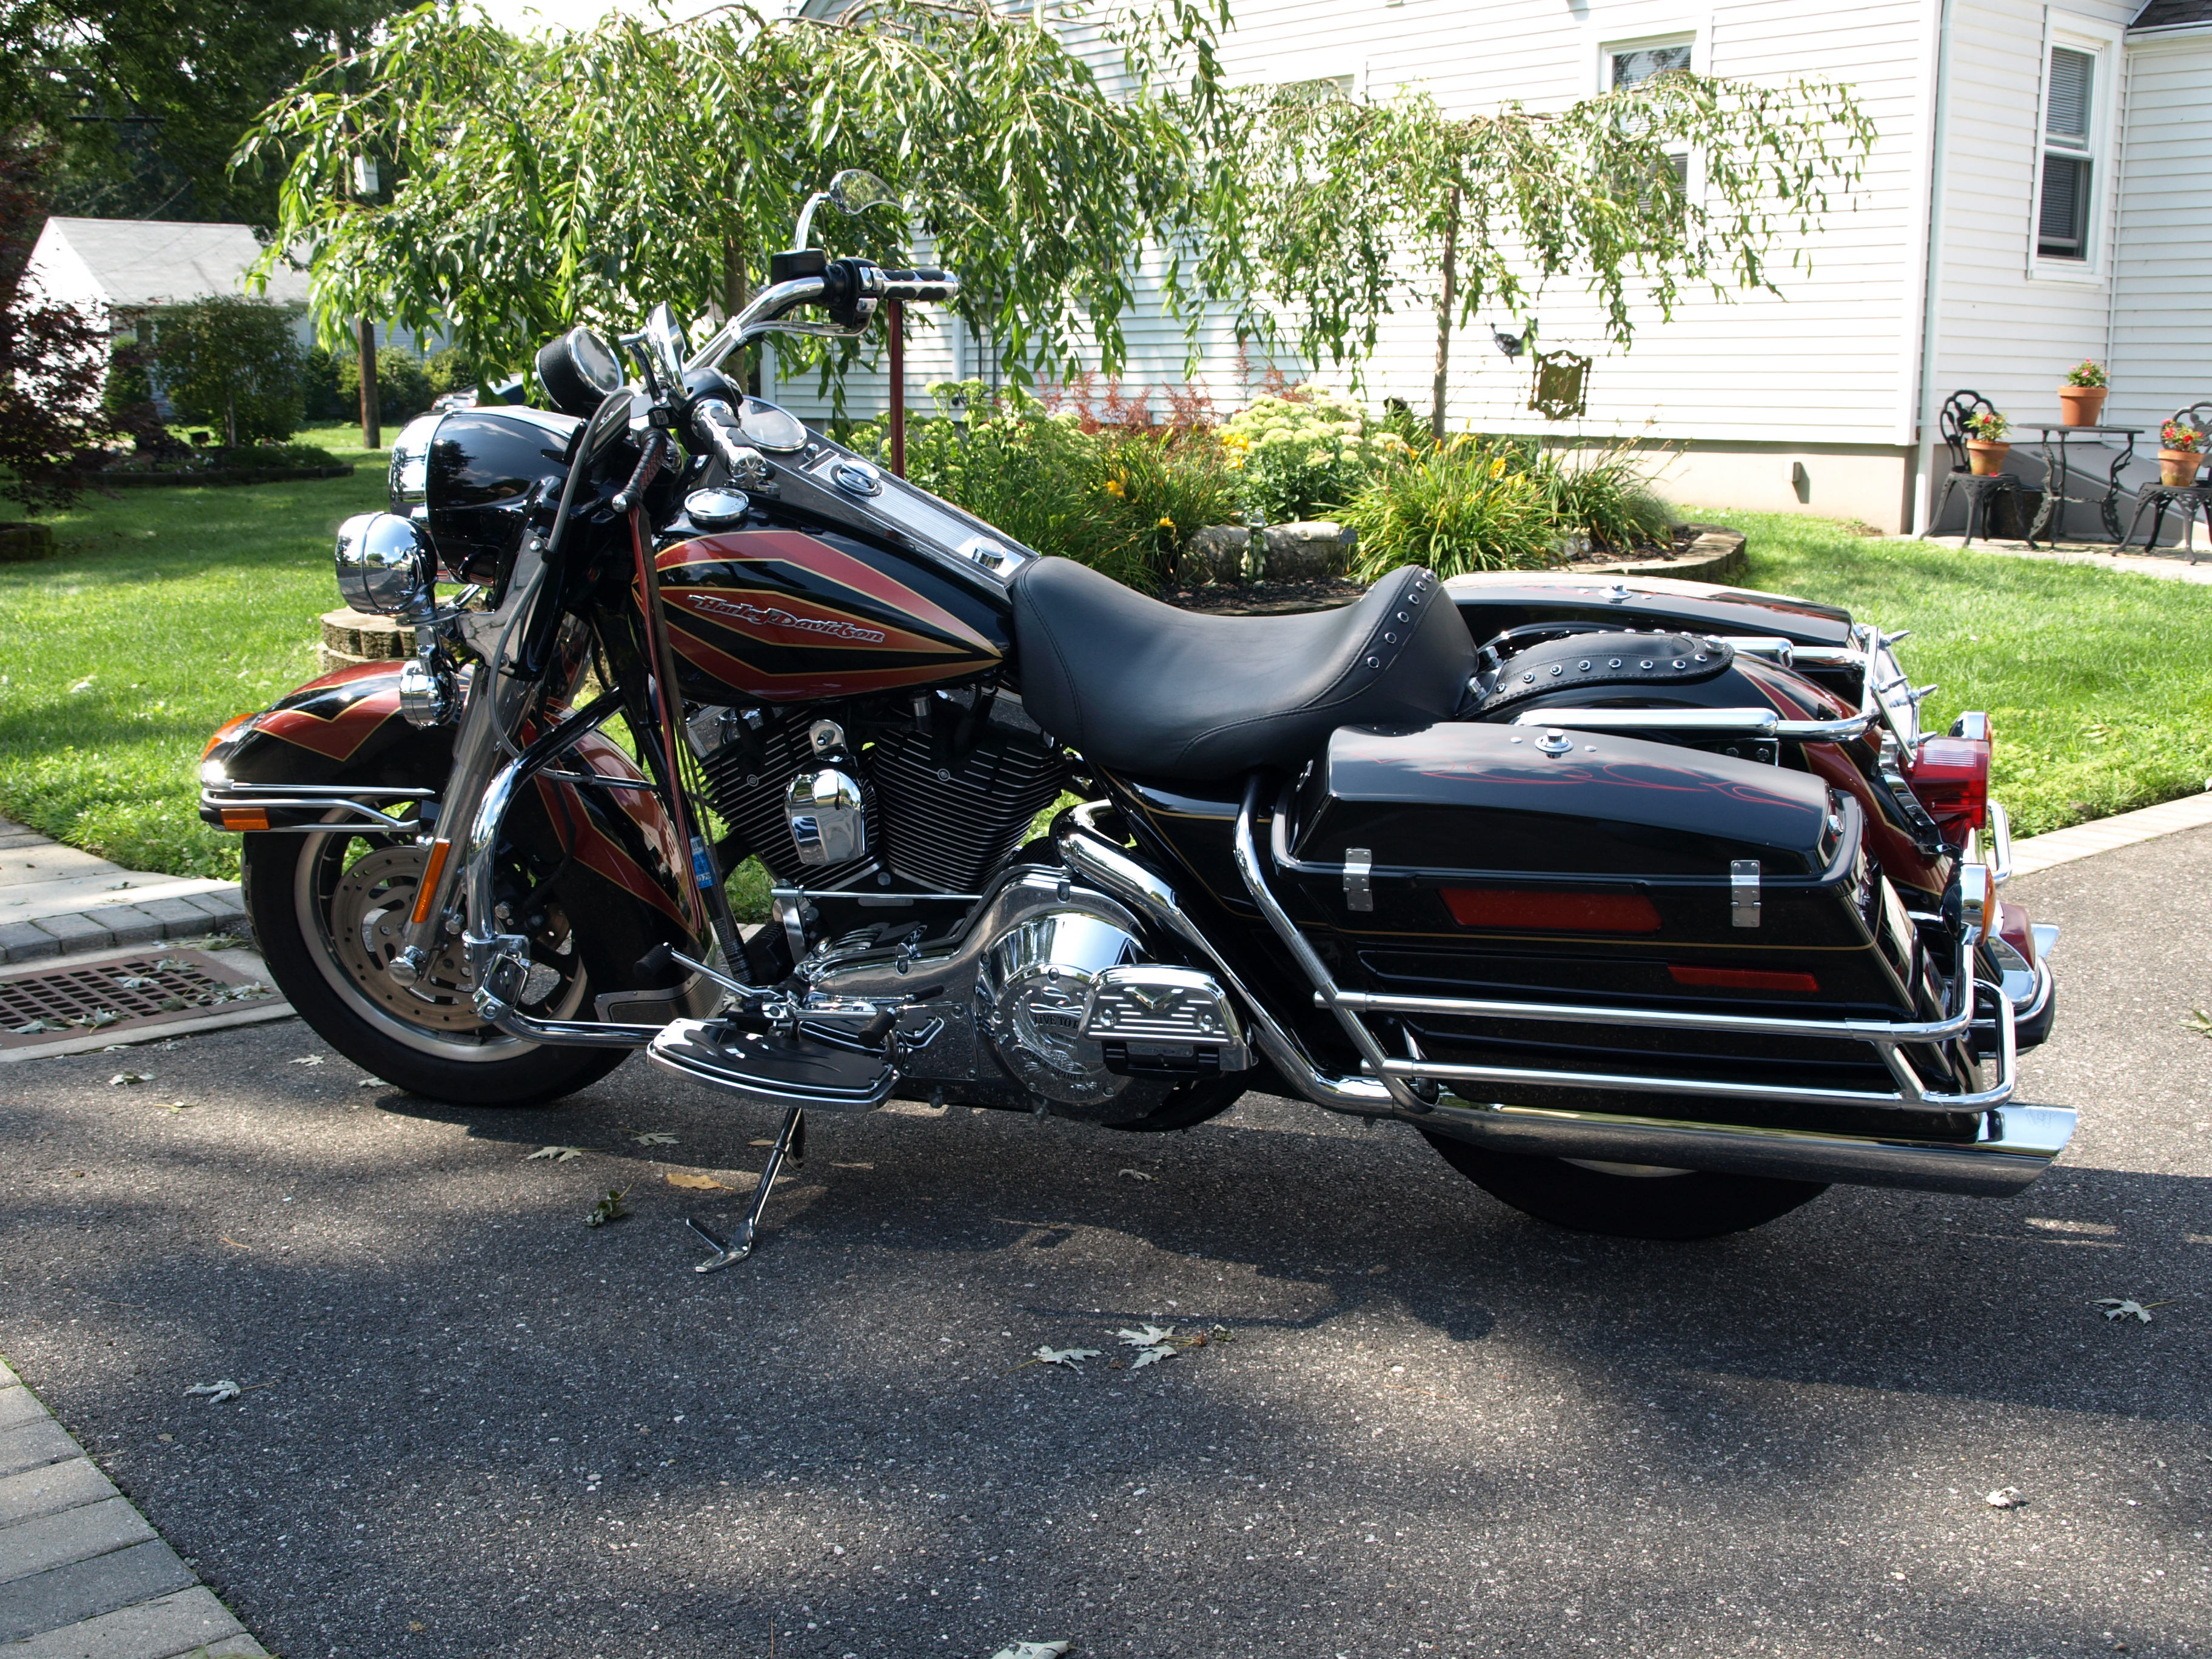 Harley Davidson Solo Seats For Sale Images